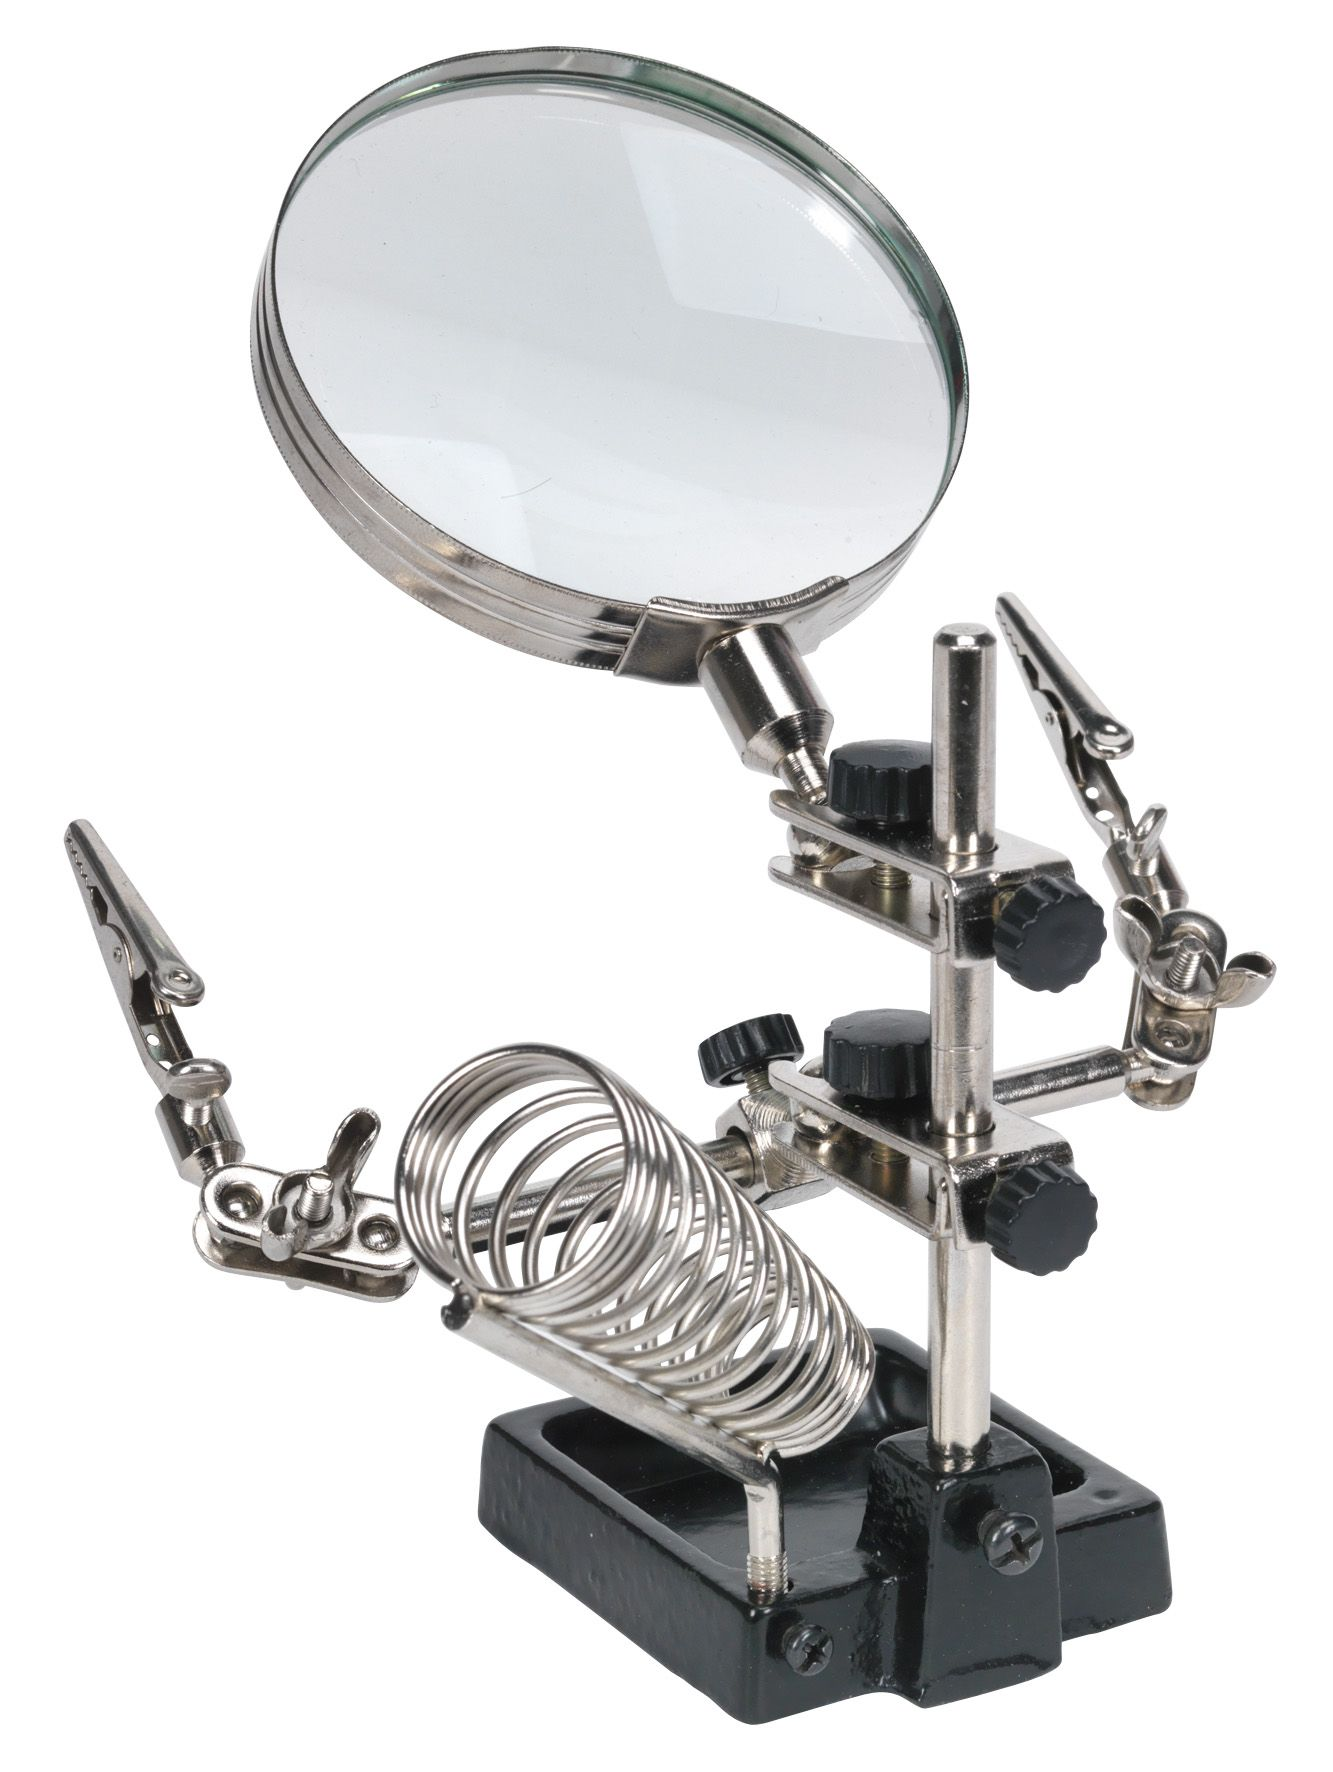 Sealey Mini Robot Soldering Stand with Magnifier & Iron Holder